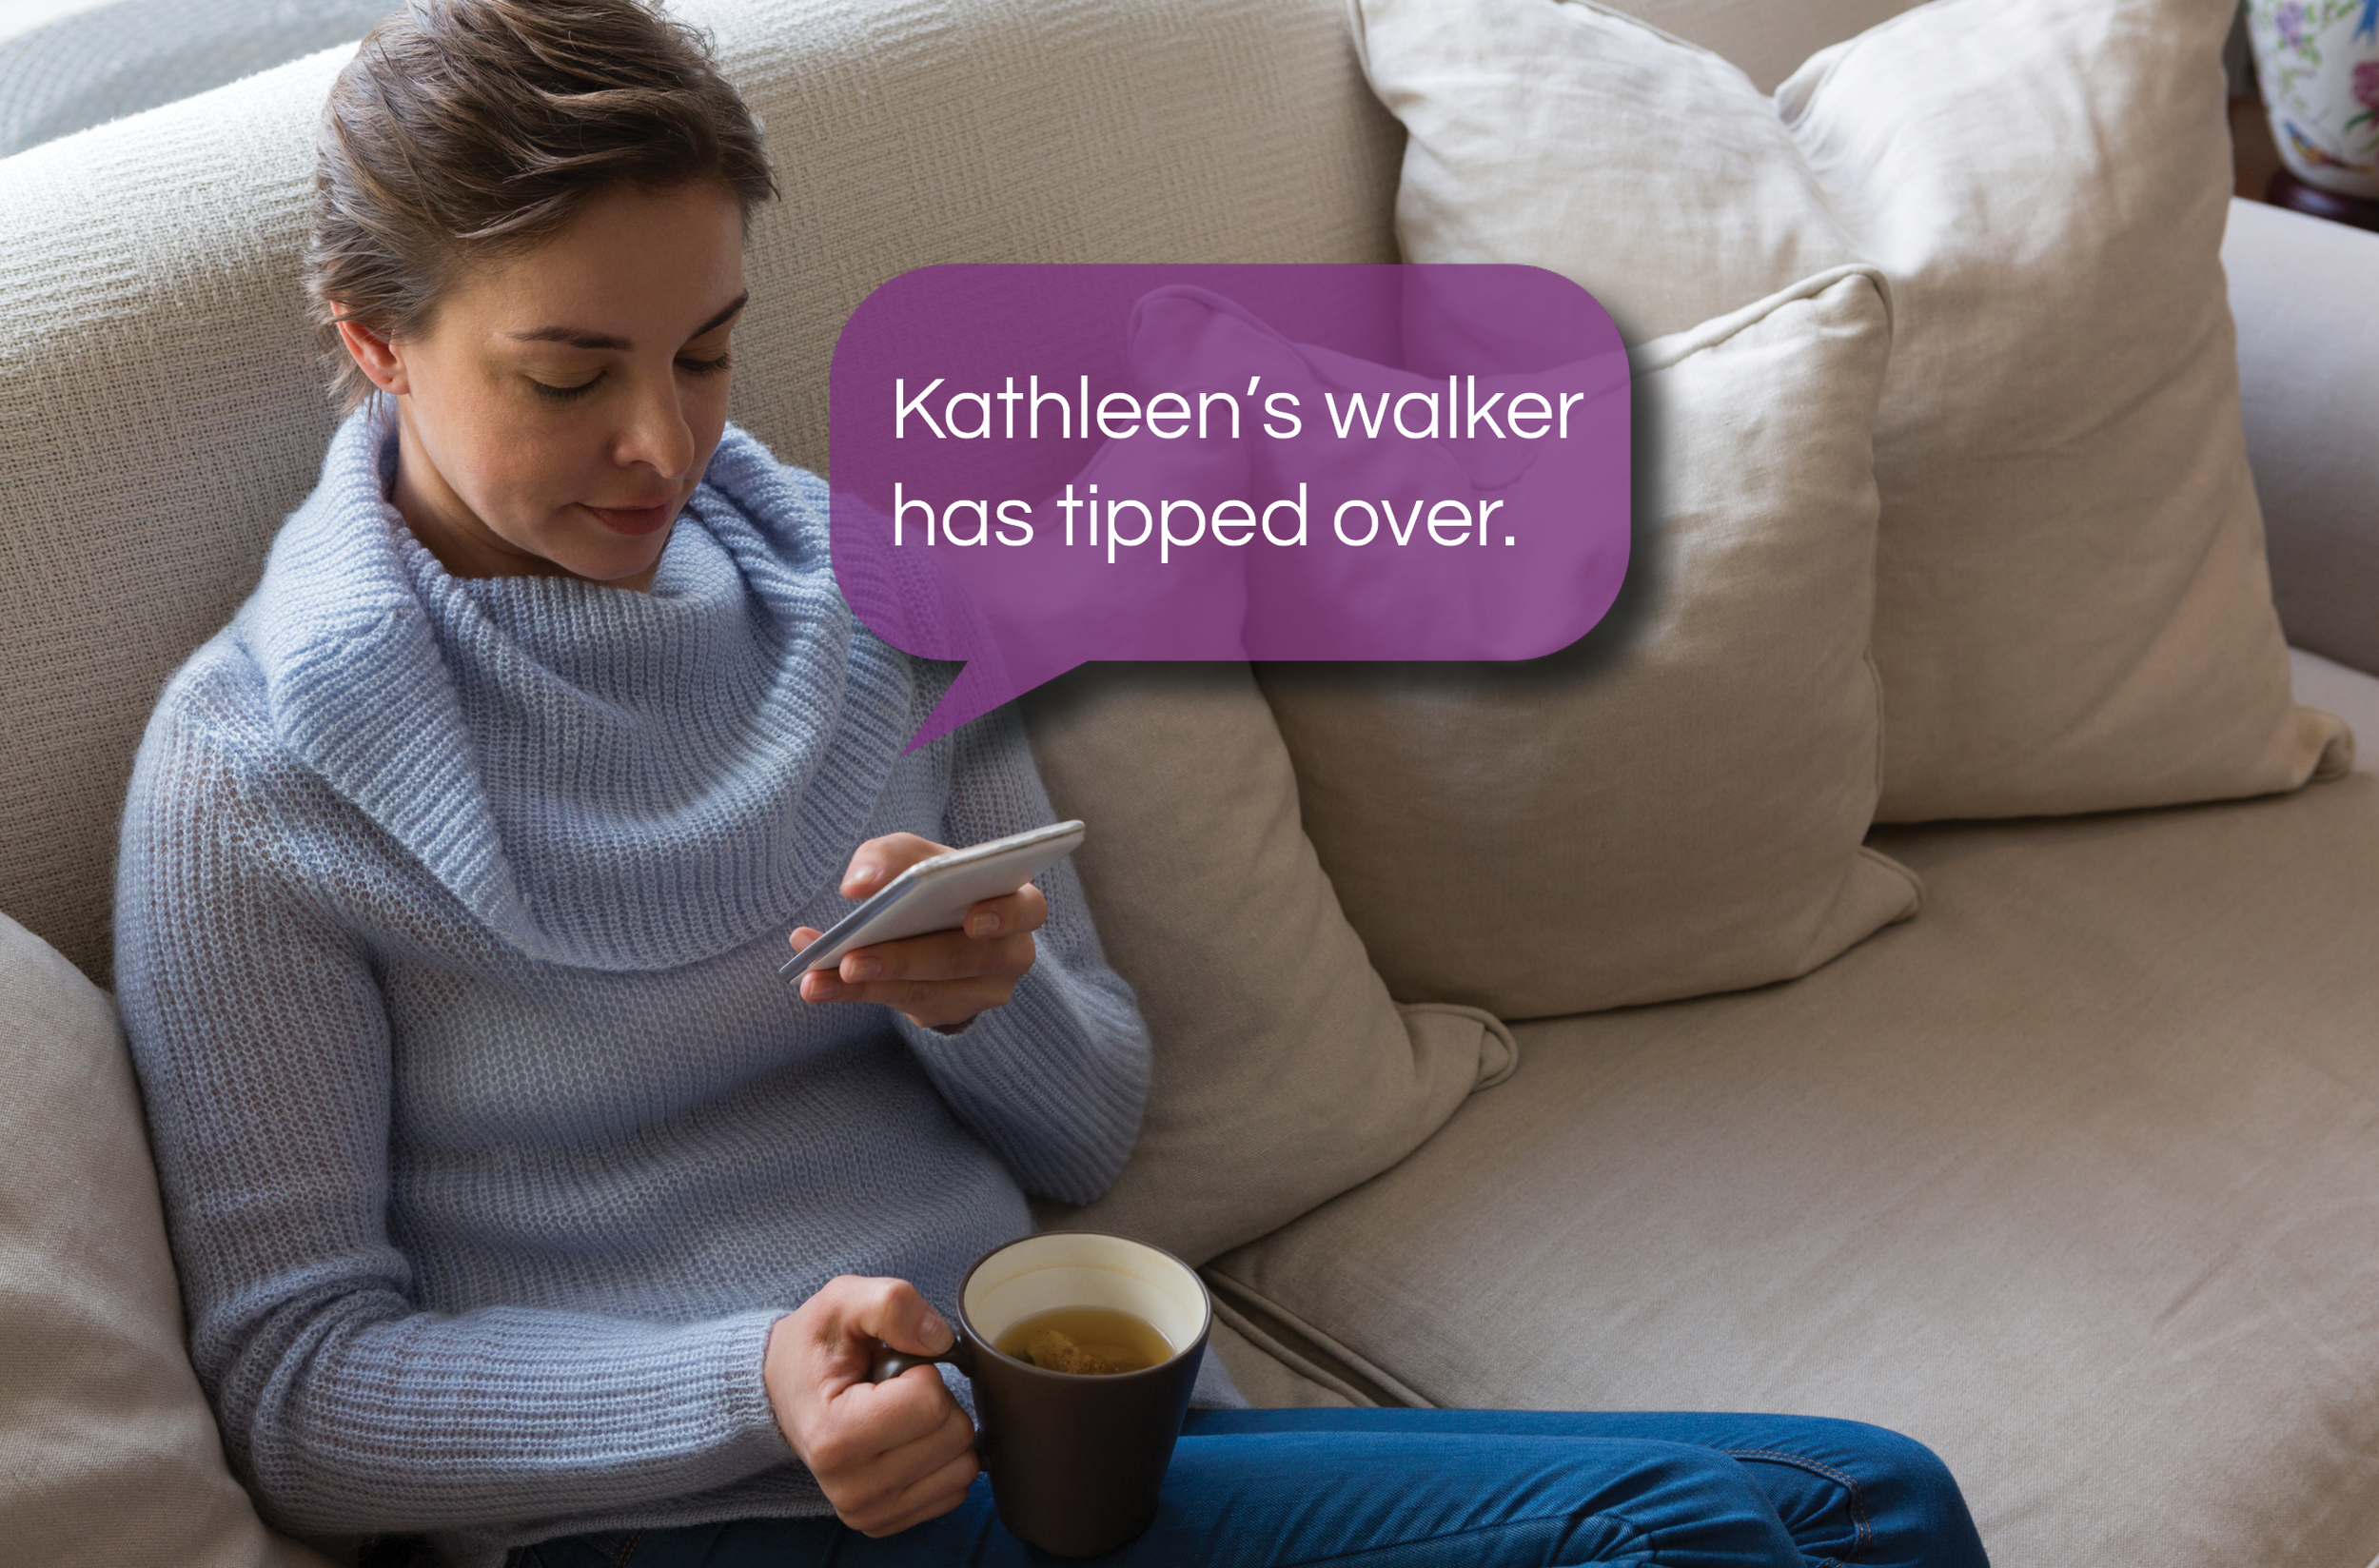 We keep you connected. - With the WalkWise app, family members have access to 24/7 activity data. Not only does this data keep seniors independent, it's also a great conversation starter. If something goes wrong (like the walker tipping over) get an instant alert so you can check in on them.